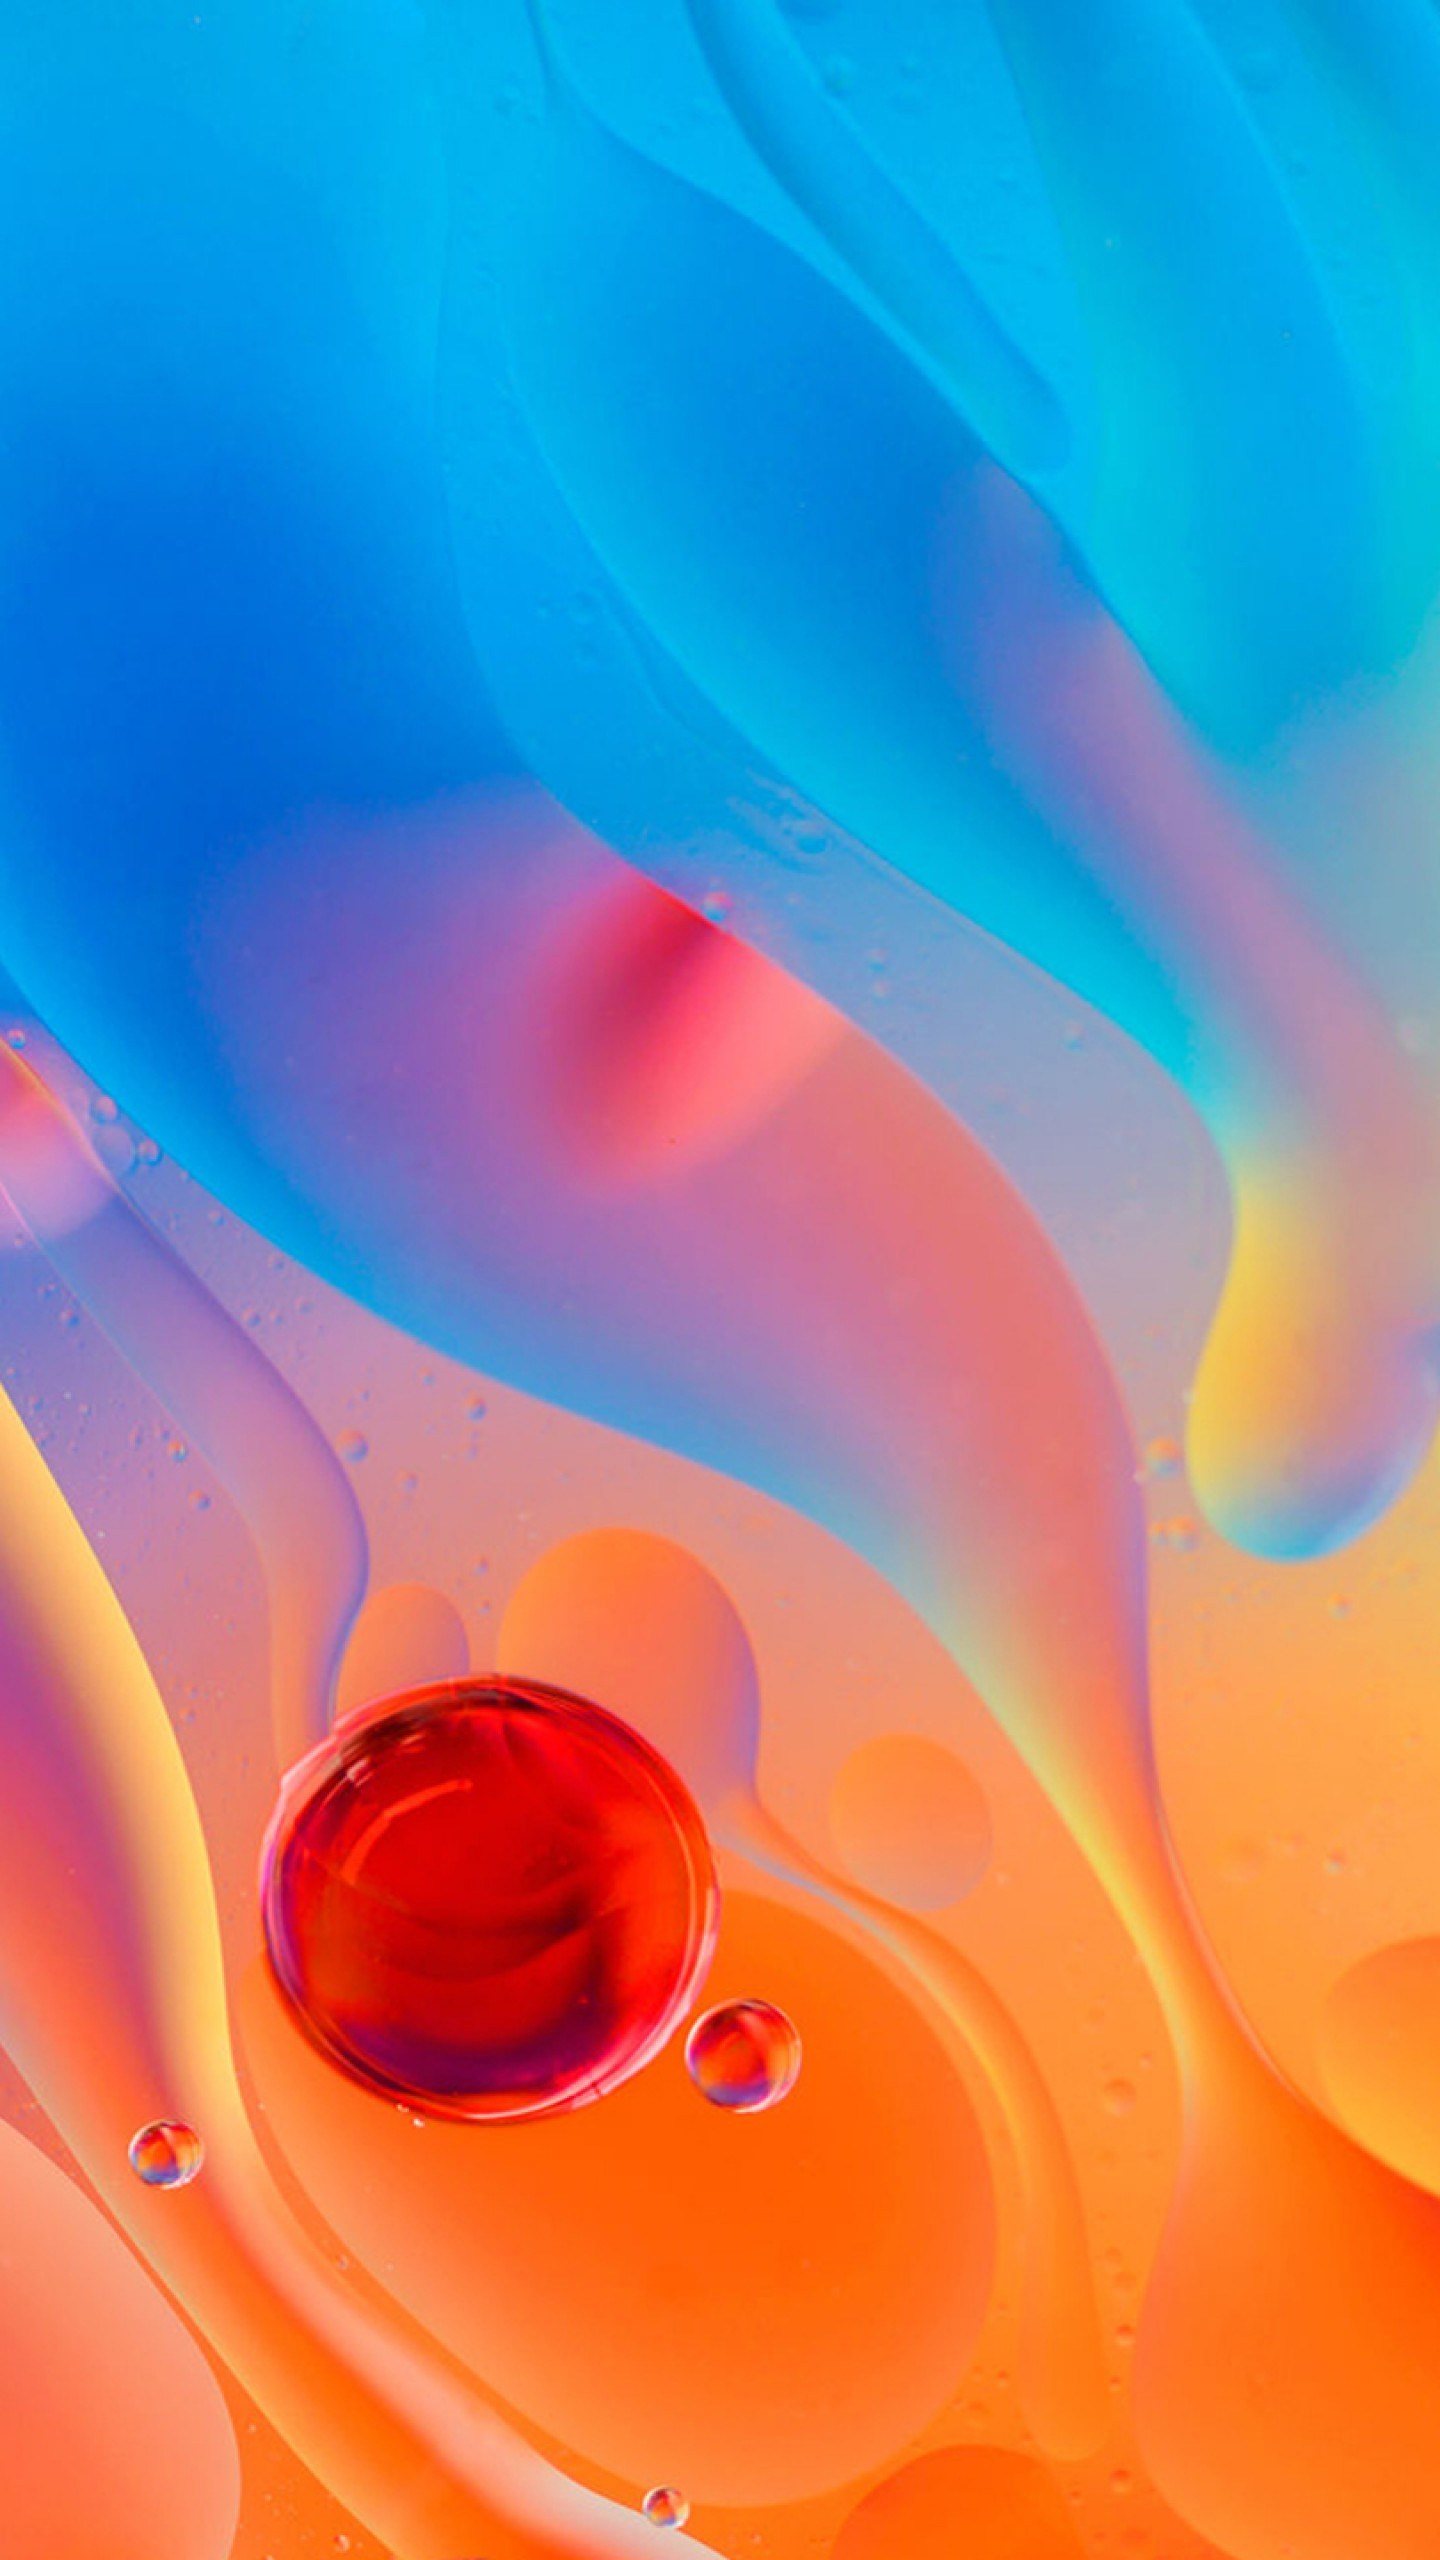 Wallpaper Colorful Gionee A1 Stock Hd Abstract - Fractal Art , HD Wallpaper & Backgrounds